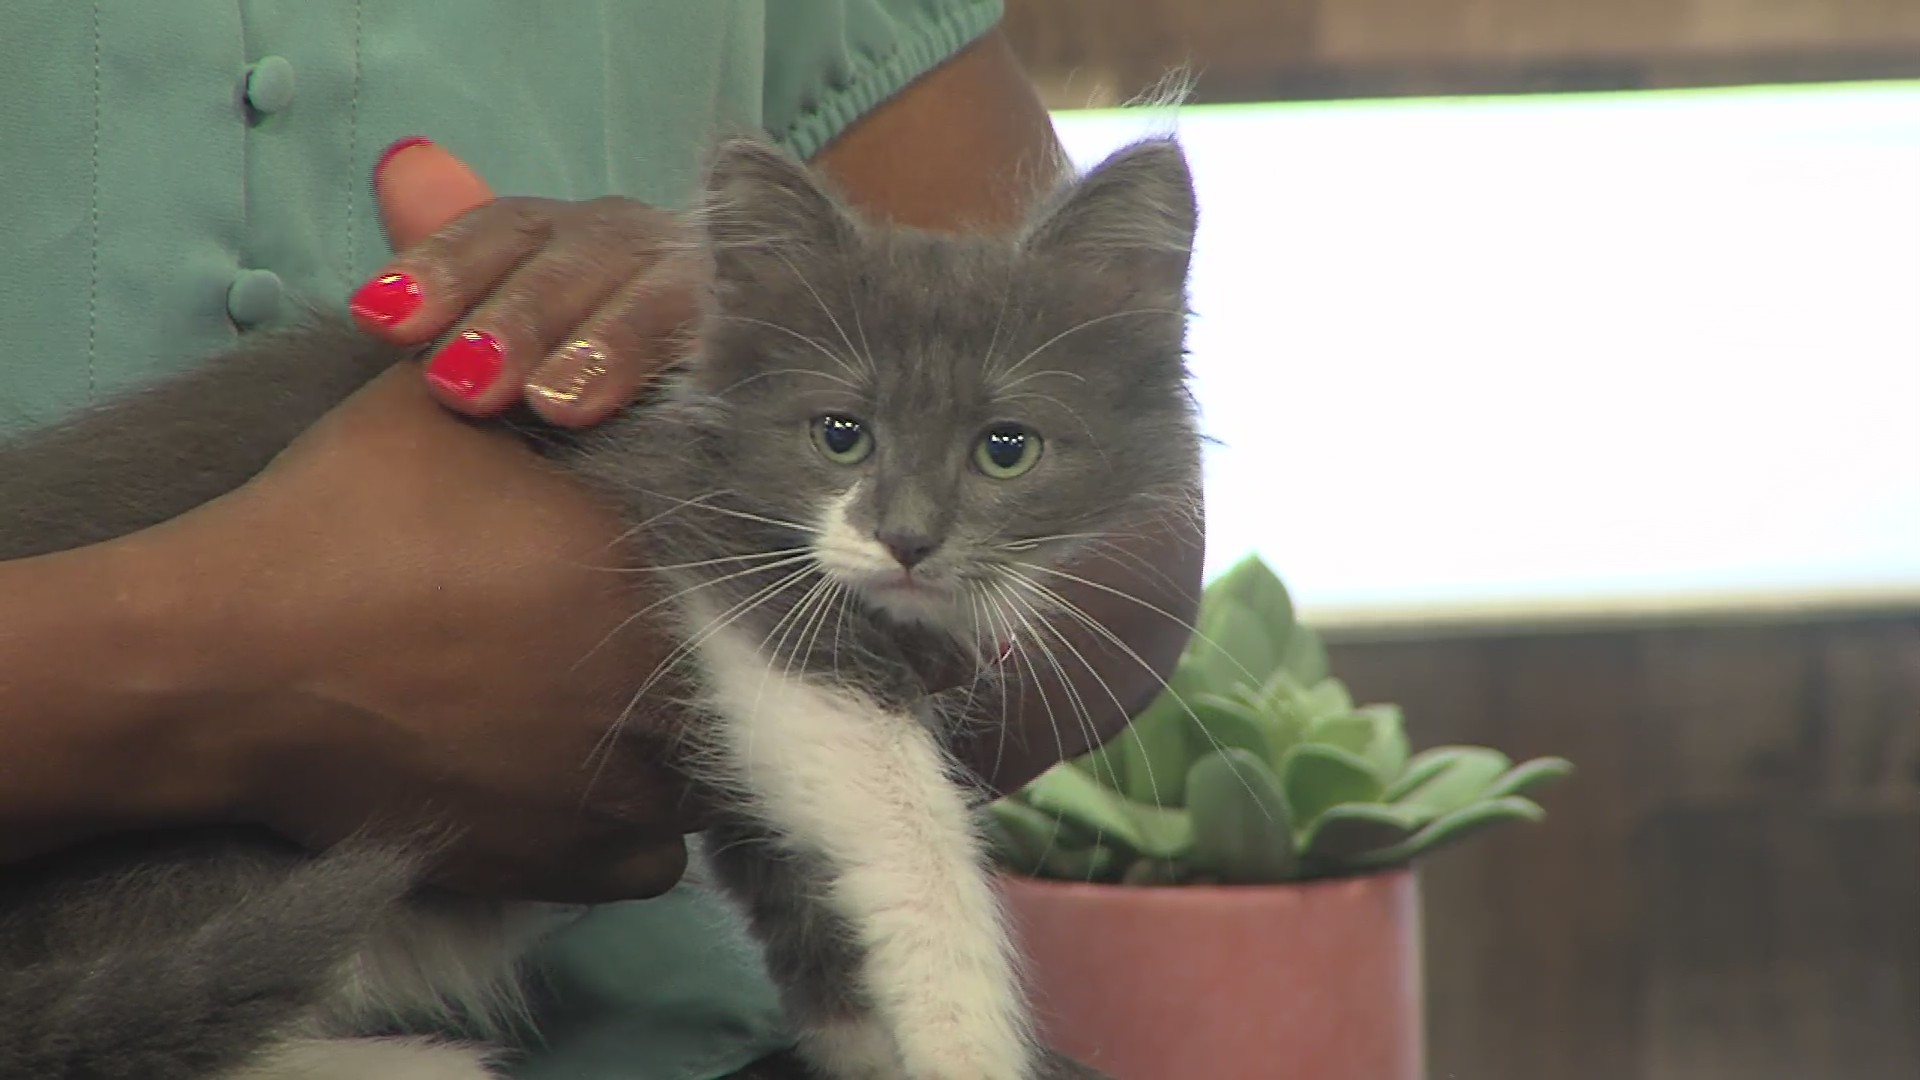 Pet of the Week: Fluffy and Fancy